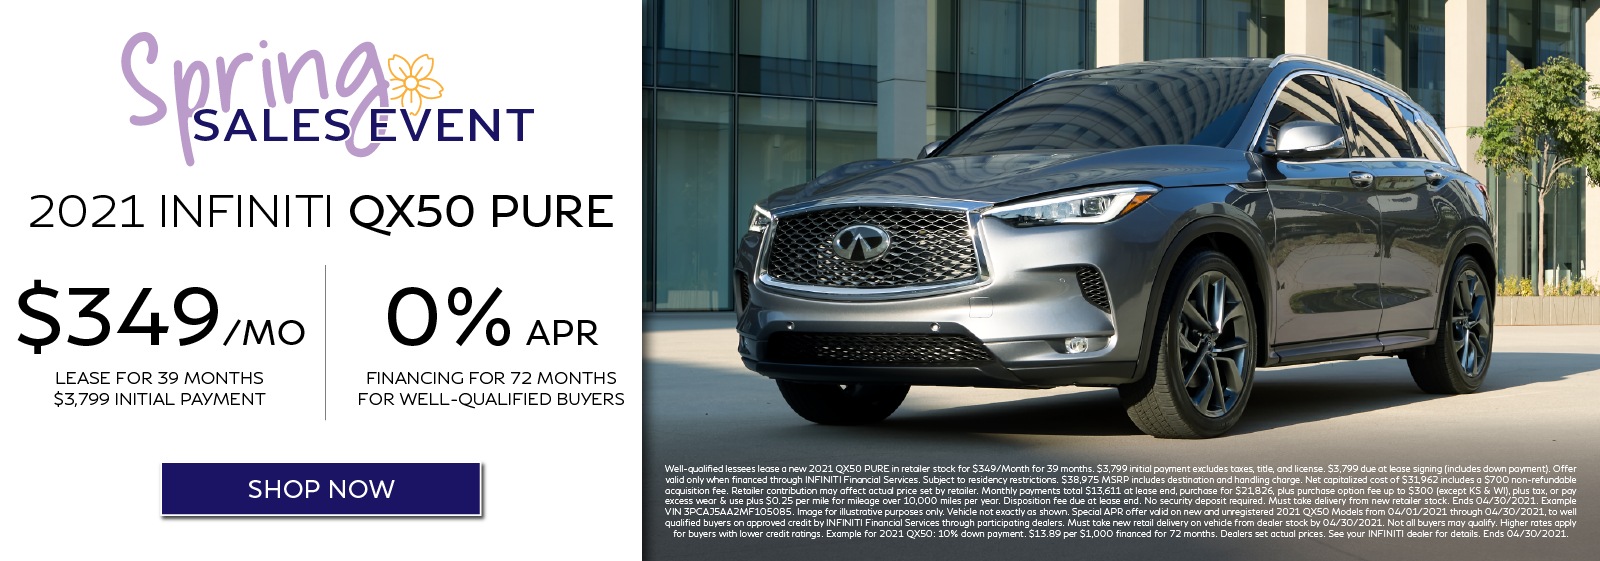 2021 QX50 Lease and APR Offers. Click to shop now.